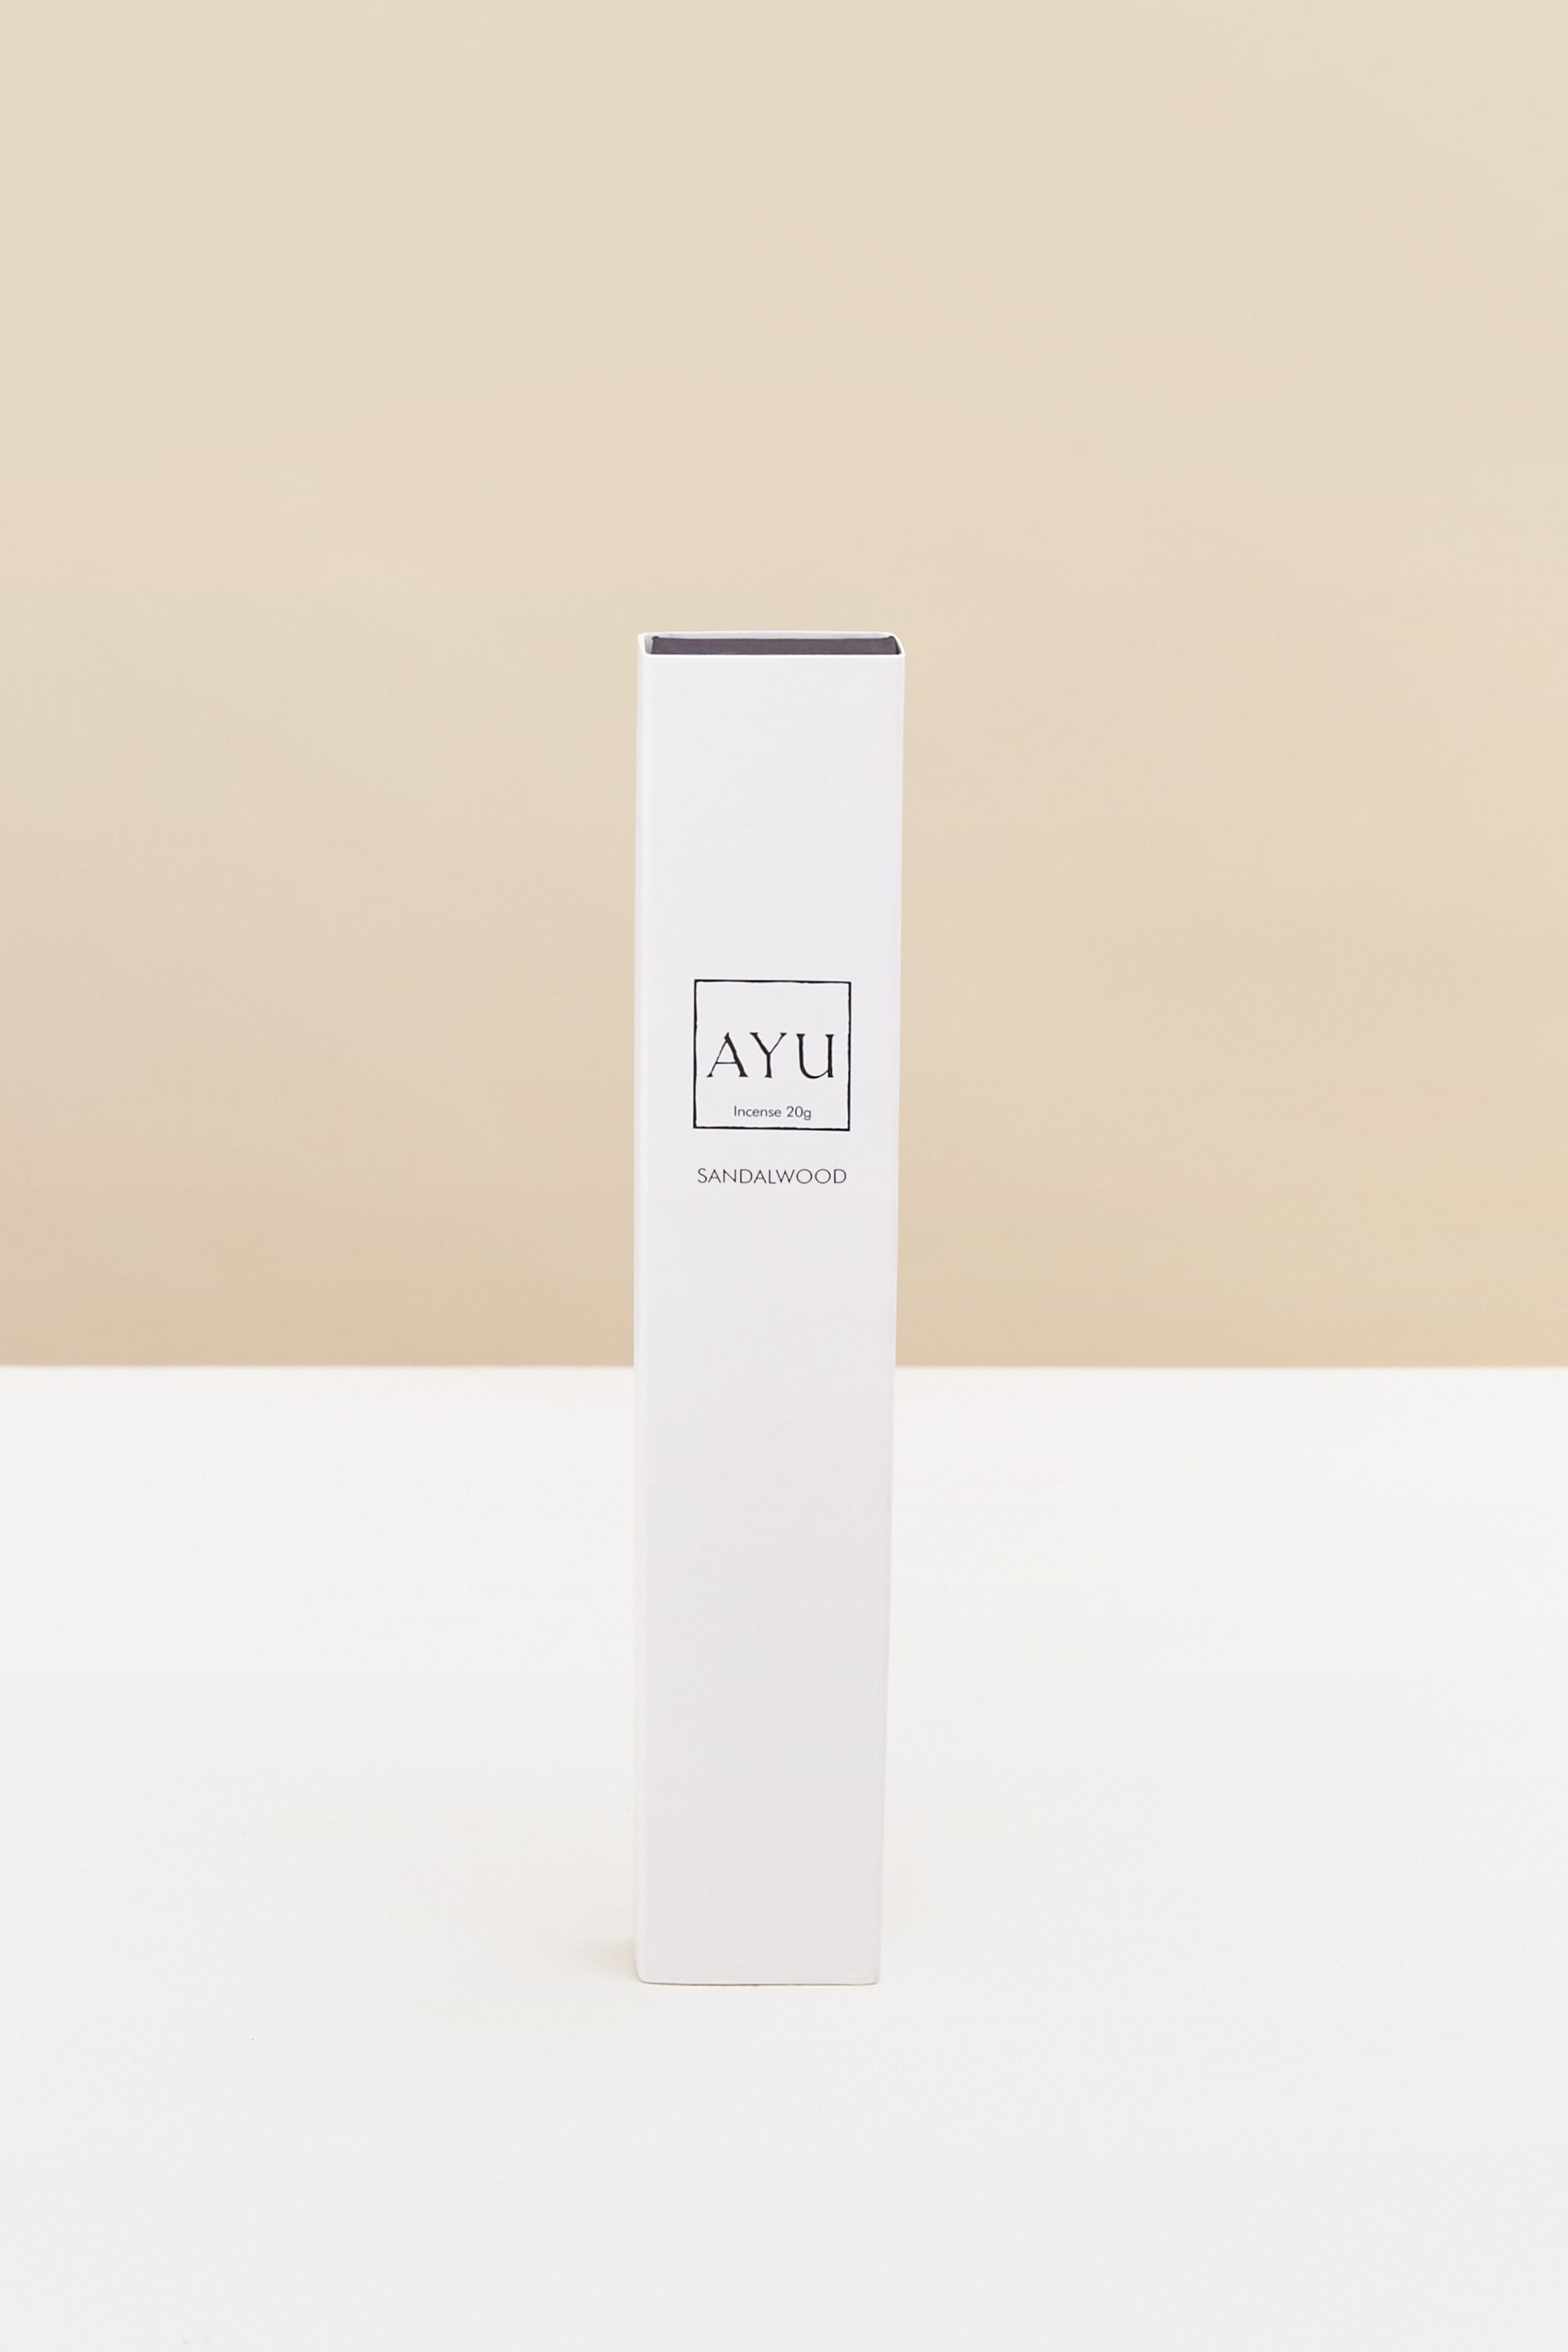 AYU Sandalwood Incense